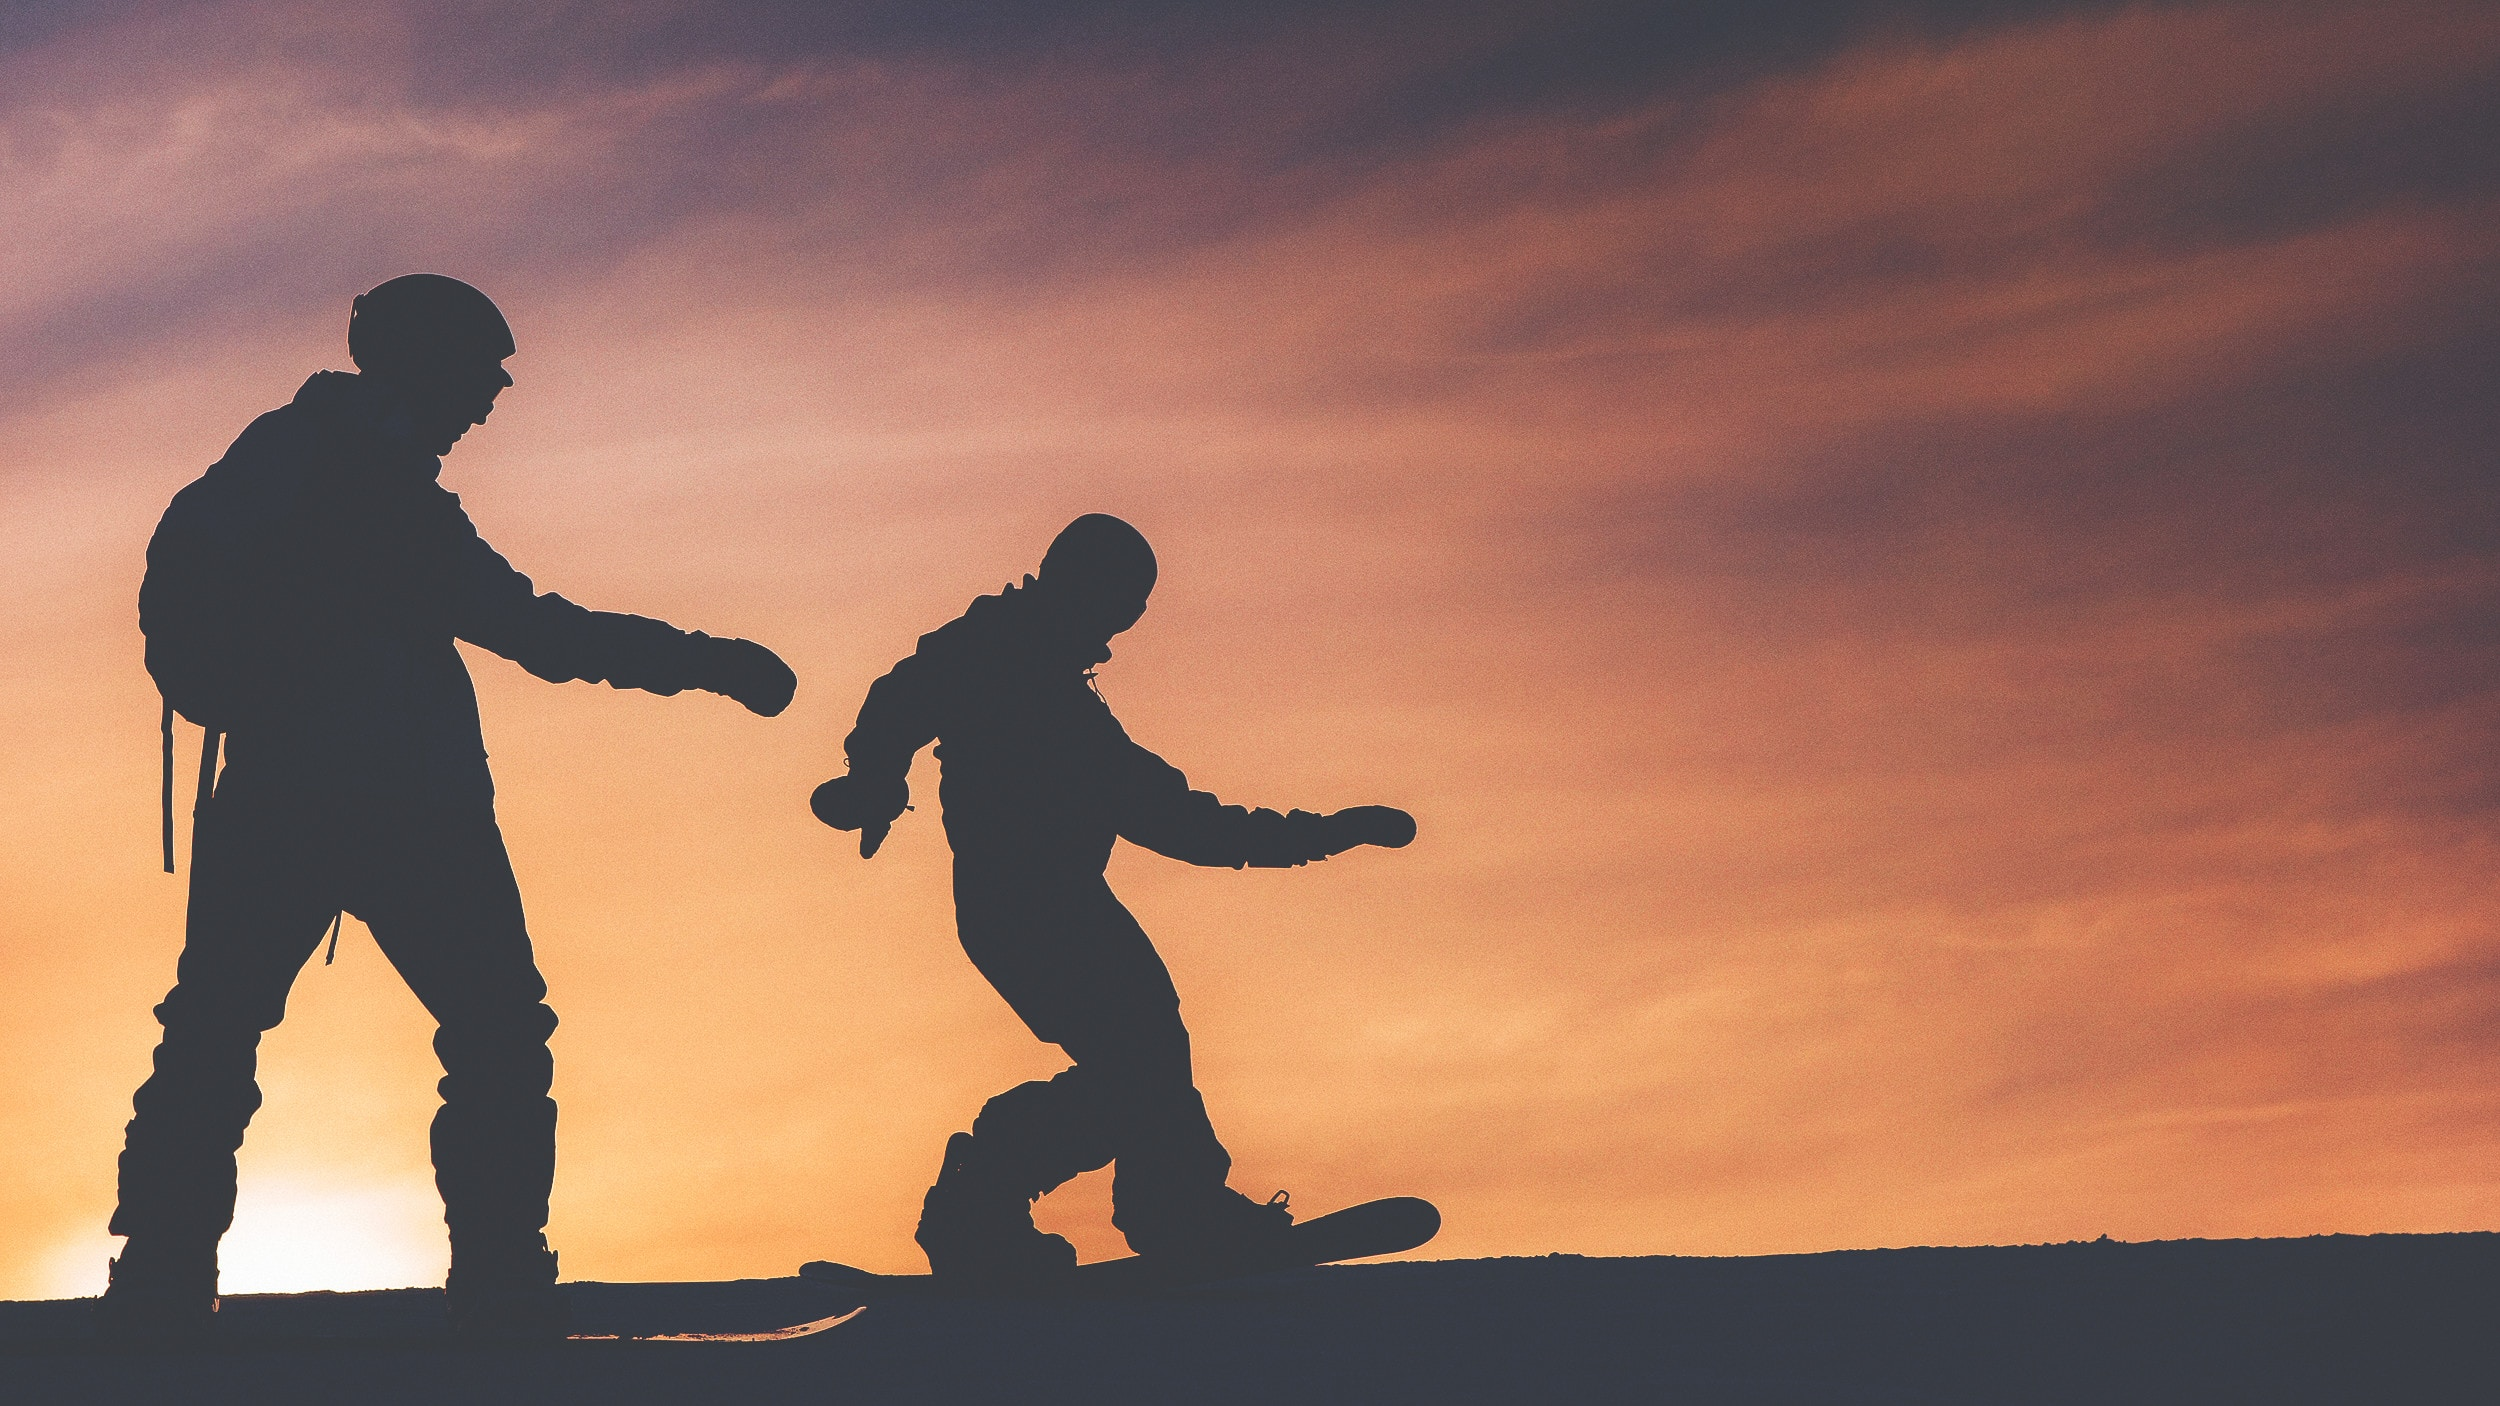 snowboarding at sunset